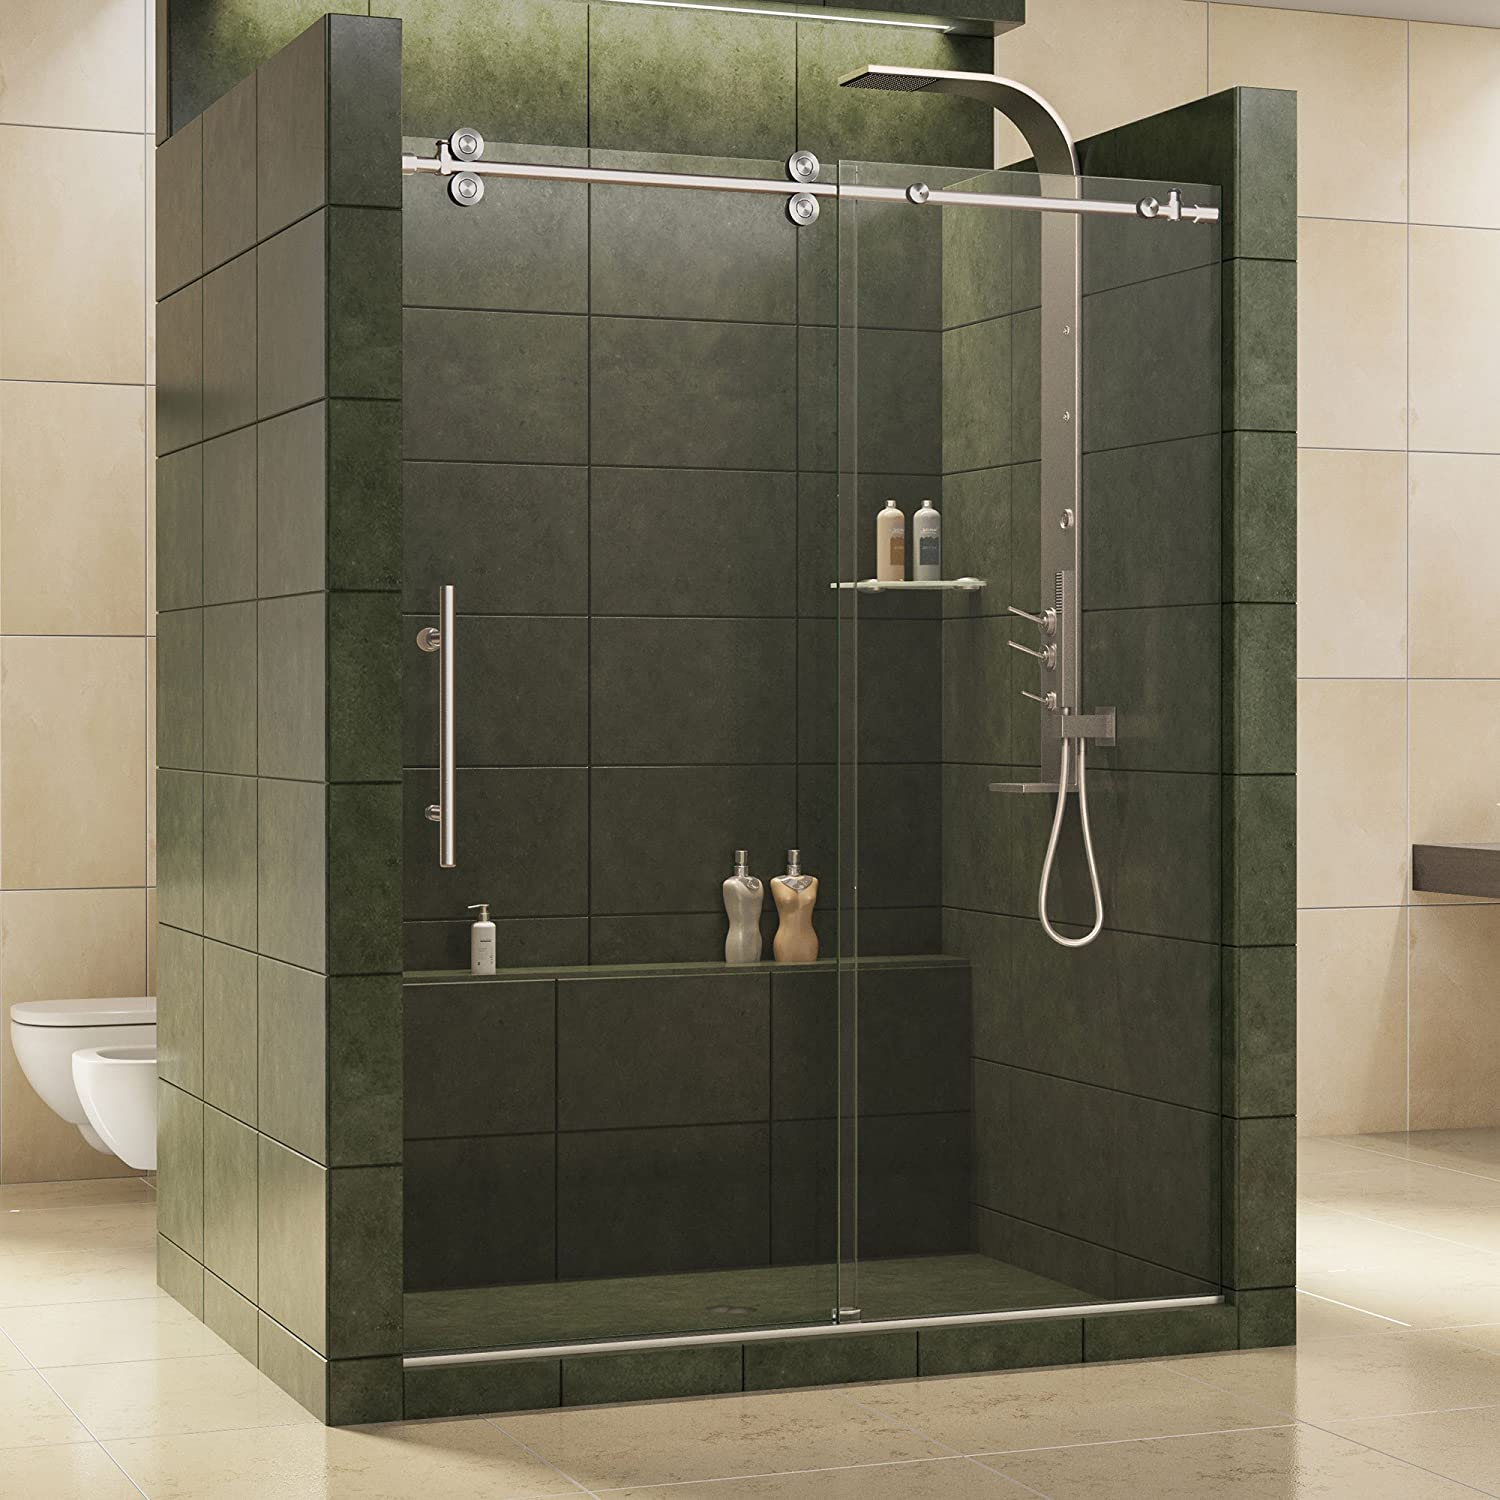 100 Glass Shower Enclosures Majestic Kitchen 3 8